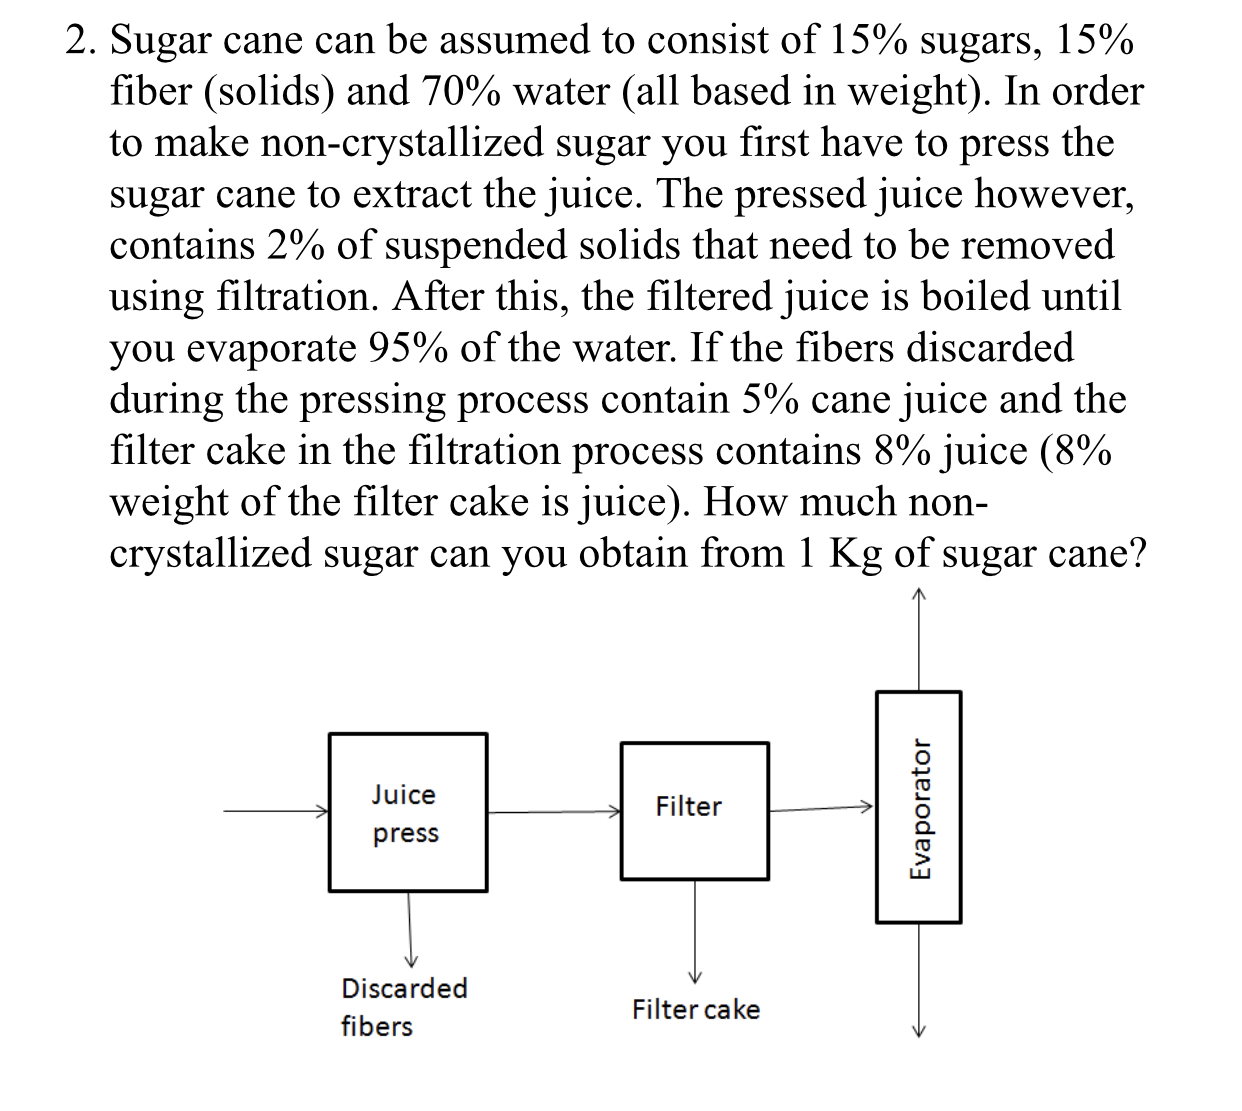 2. Sugar cane can be assumed to consist of 15% sugars, 15% fiber (Solids) and 70% water (all based in weight). In order to make non-crystallized sugar you first have to press the sugar cane to extract the juice. The pressed juice however contains 2% of suspended solids that need to be removed using filtration. After this, the filtered juice is boiled until you evaporate 95% of the water. If the fibers discarded during the pressing process contain 5% cane juice and the filter cake in the filtration process contains 8% juice(8% weight of the filter cake is juice). How much non- crystallized sugar can you obtain from 1 Kg of sugar cane? uice press Filter Discarded fibers Filter cake